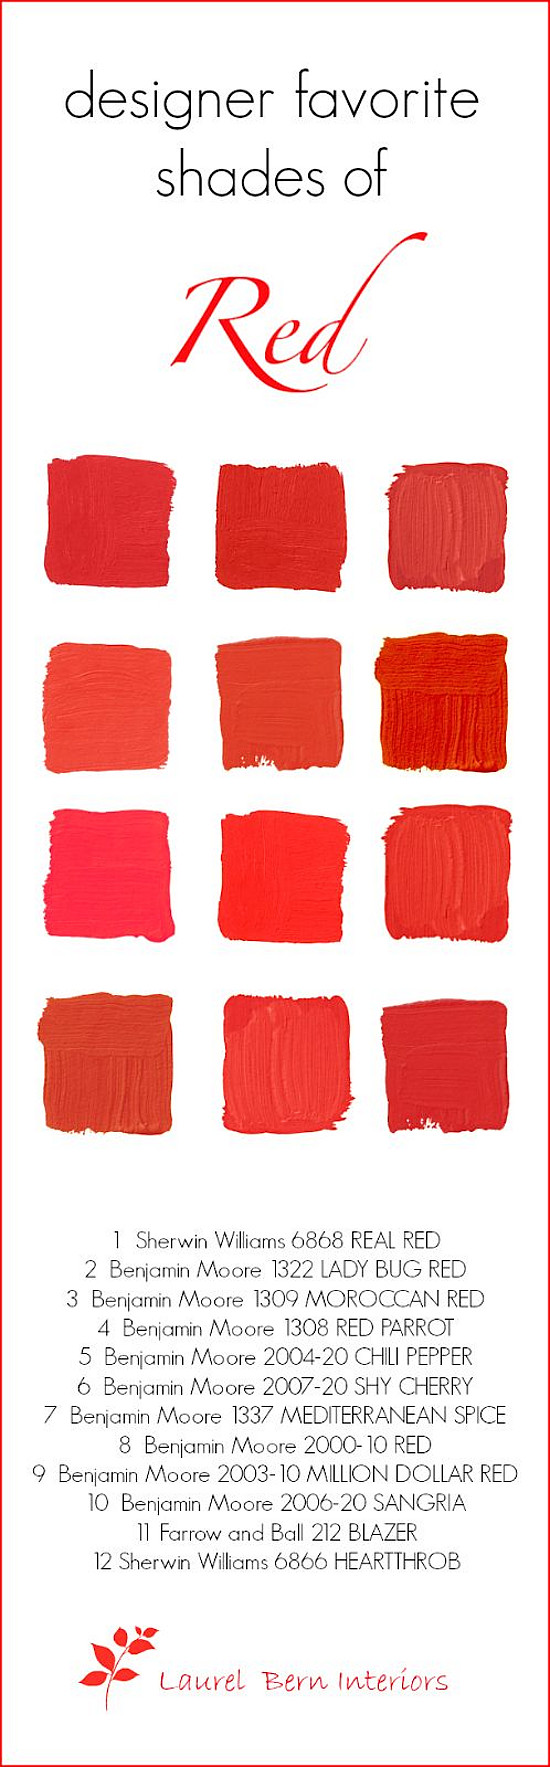 Red Door Paint Color Ideas: Sherwin Williams SW6868 Real Red. Benjamin Moore 1322 Ladybug Red. Benjamin Moore 1309 Moroccan Red. Benjamin Moore 1308 Red Parrot. Benjamin Moore 2024-20 Chilli Pepper. Benjamin Moore 2007-20 Shy Cherry. Benjamin Moore 1337 Mediterranean Spice. Benjamin Moore 2000-10 Red. Benjamin Moore 2006-20 Sangria. Farrow and Ball 212 Blazer. Sherwin Williams SW6866 Heartthrob. Laurel Bern Interiors.